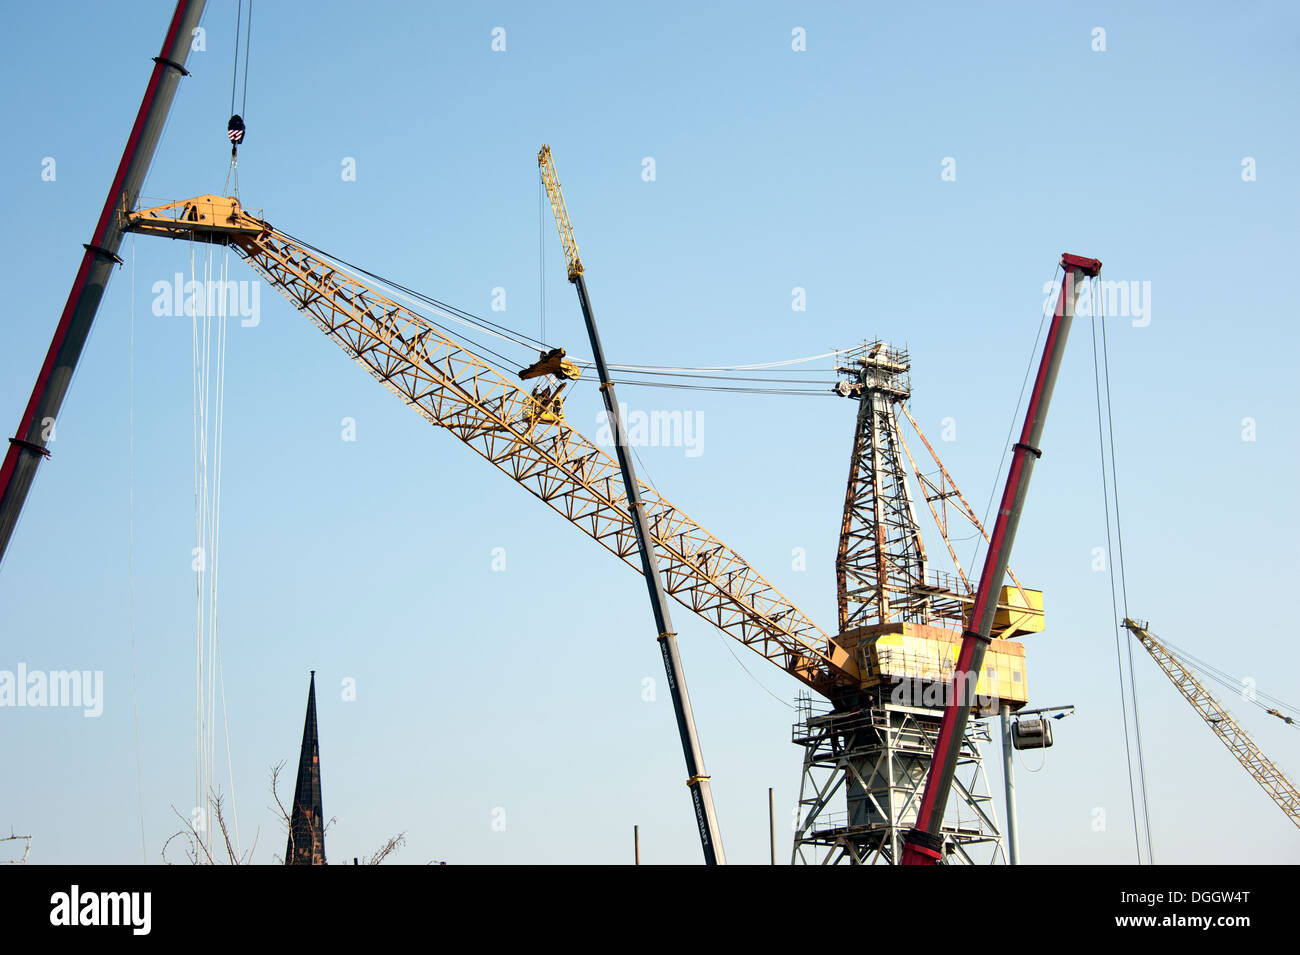 Large Crane being repaired by another crane - Stock Image